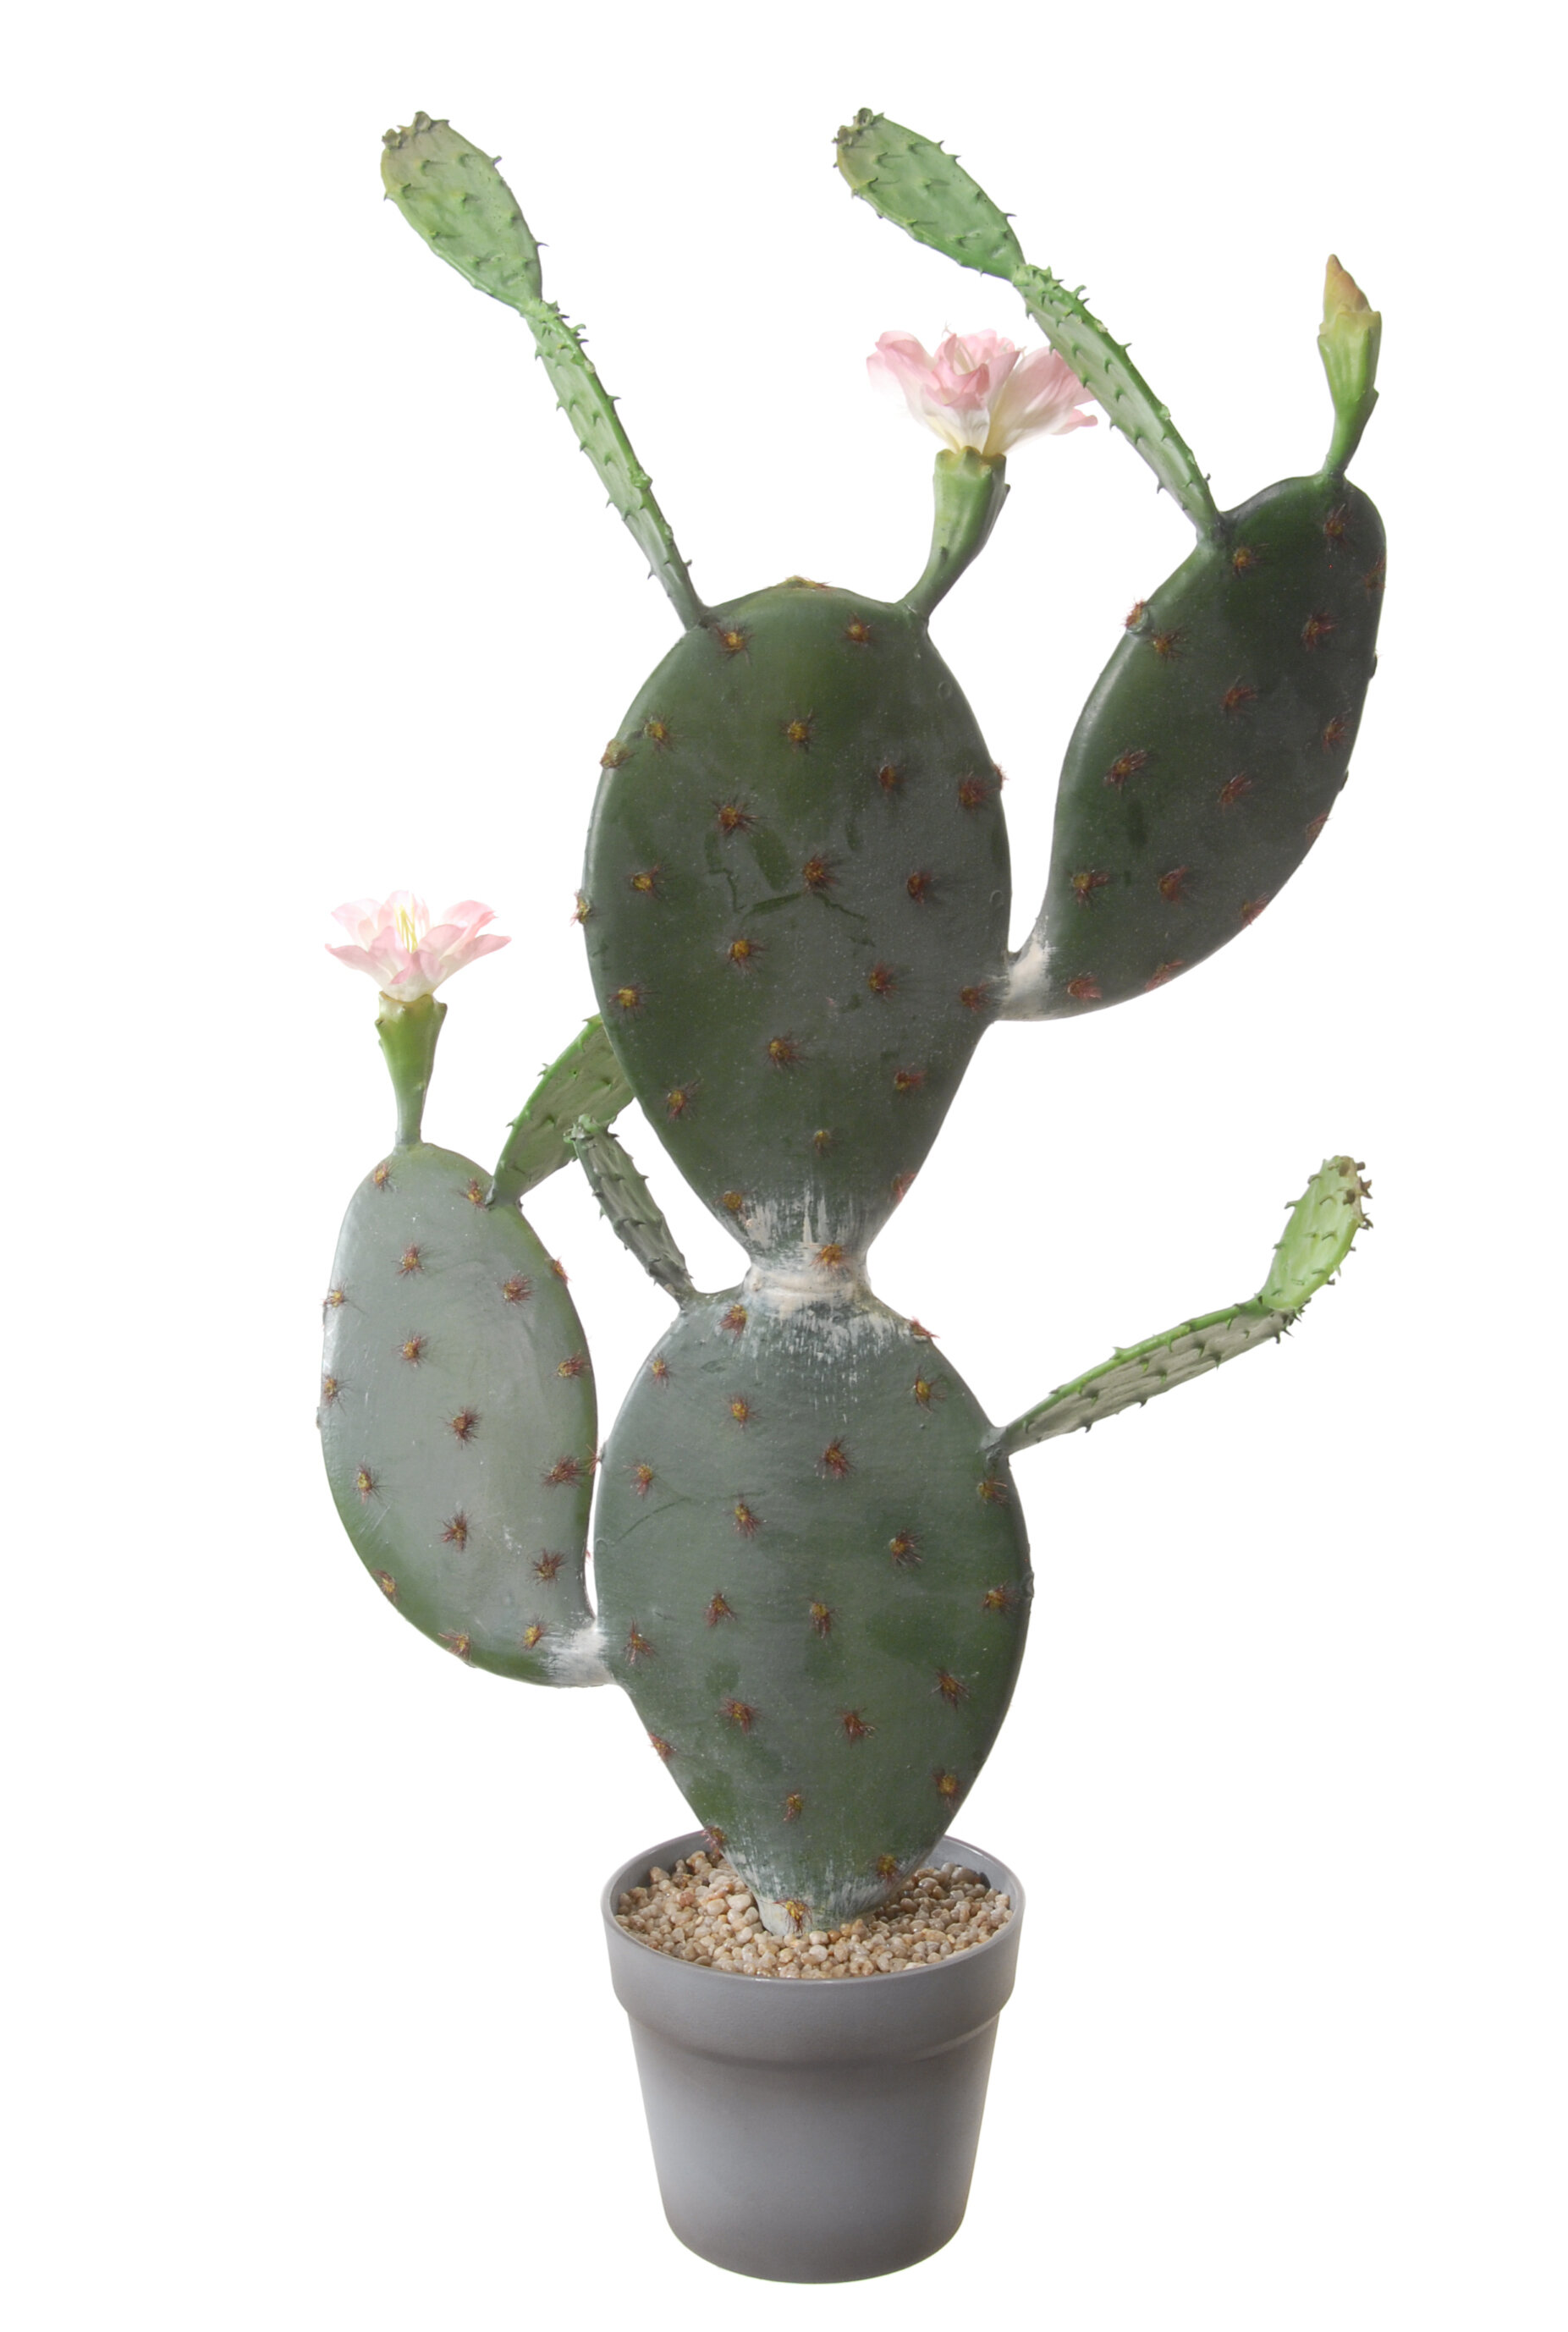 Cactus with Flower Plant in Pot